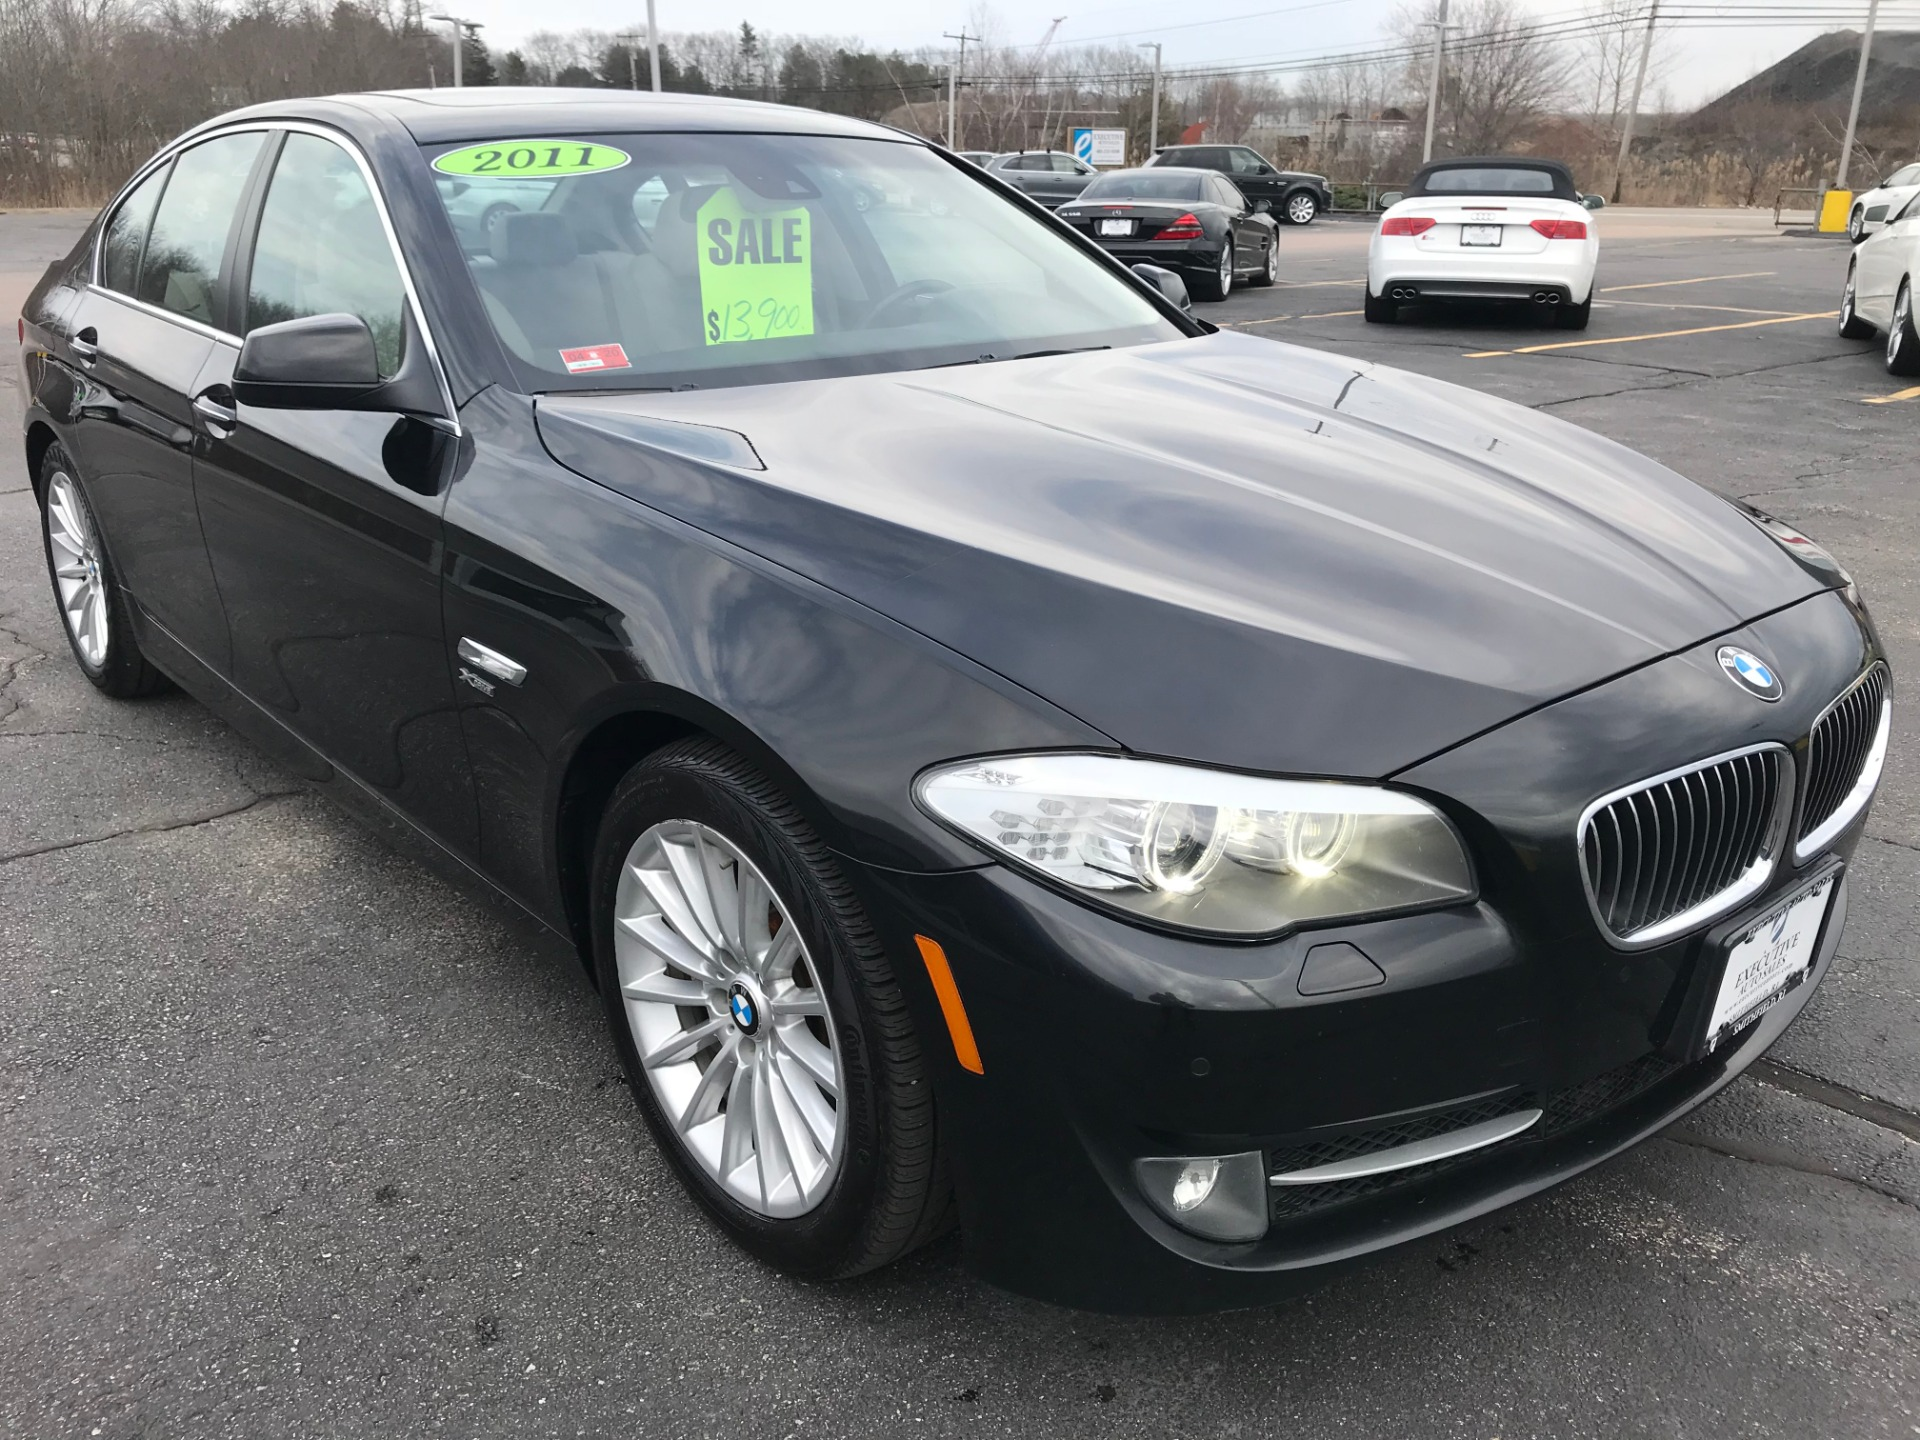 Used-2011-BMW-535-XI-XI-Used-cars-for-sale-Lake-County